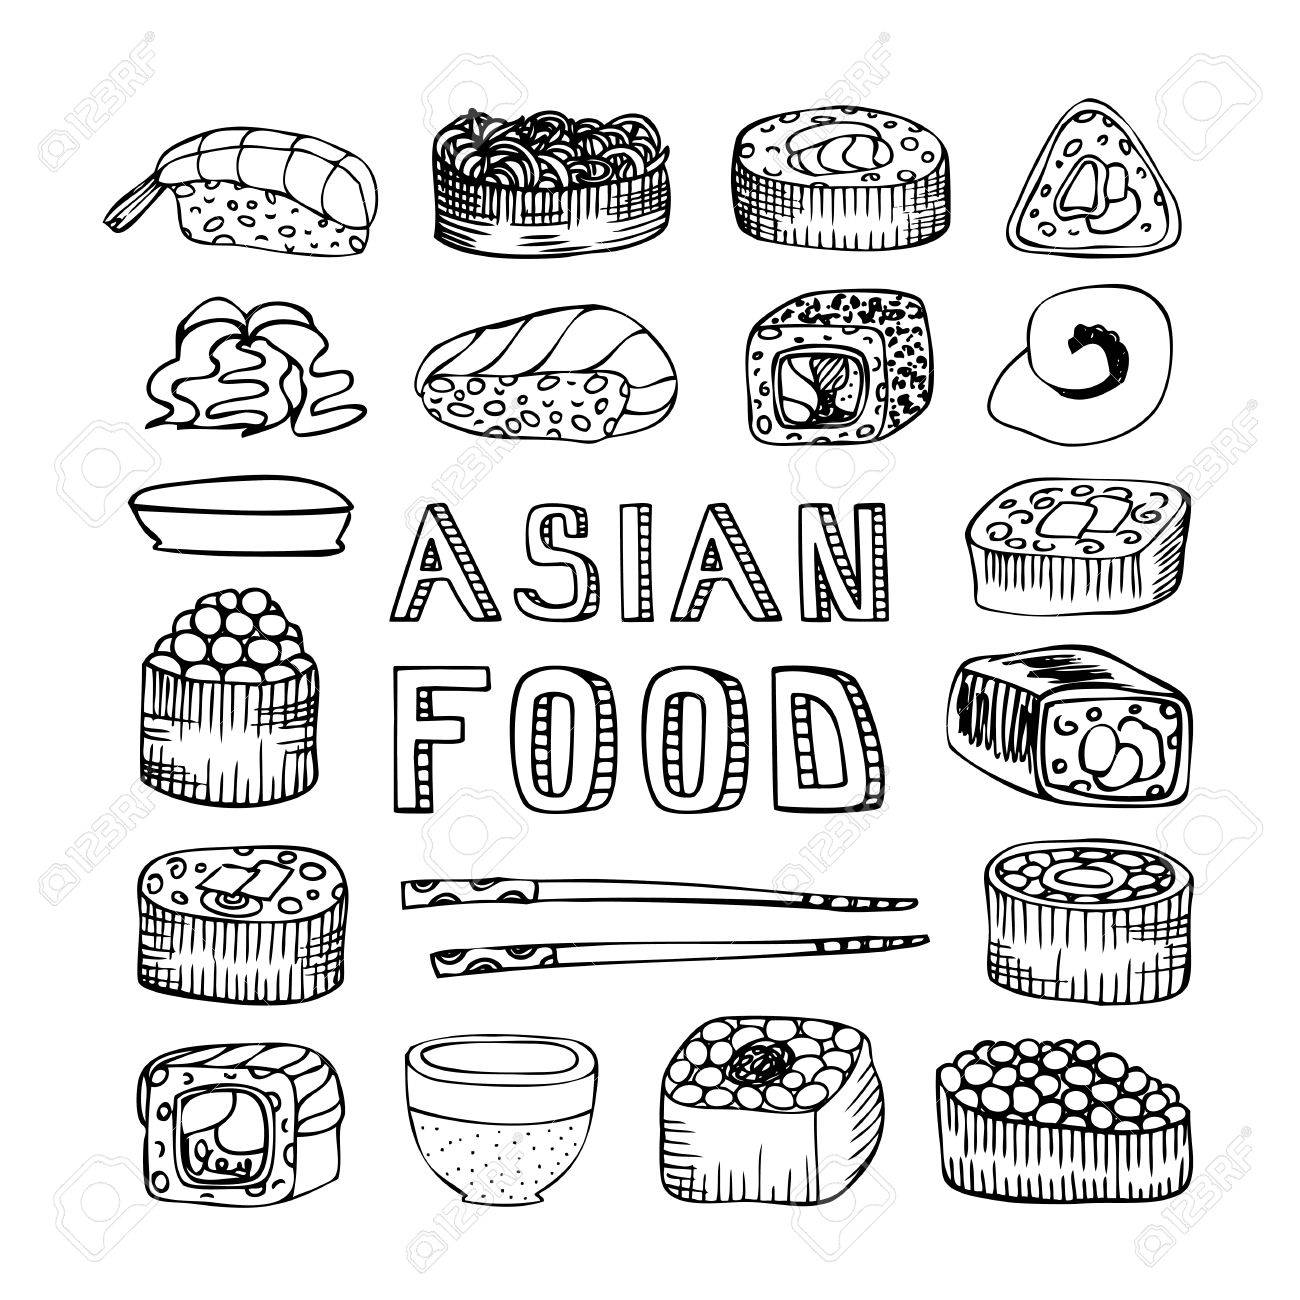 Asian Food. Asian Kitchen. Asian Food Menu For Restaurant, Cafe ...